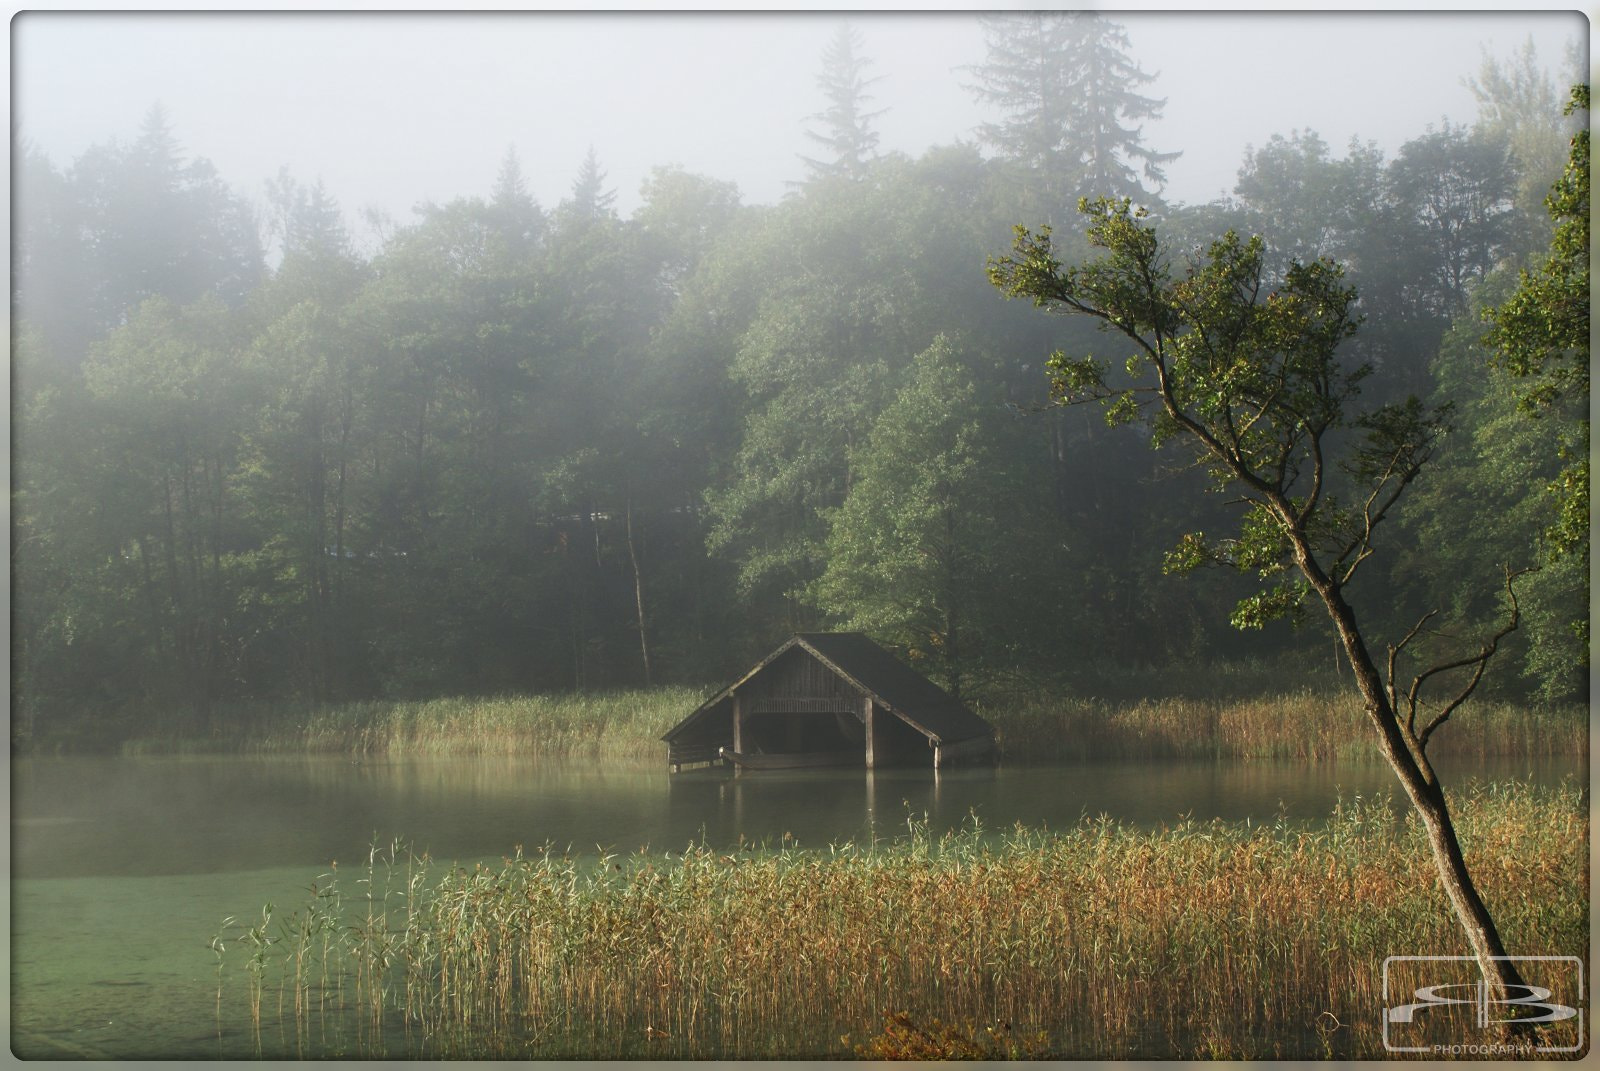 Photograph Foggy Morning by Rene BERNHARD on 500px